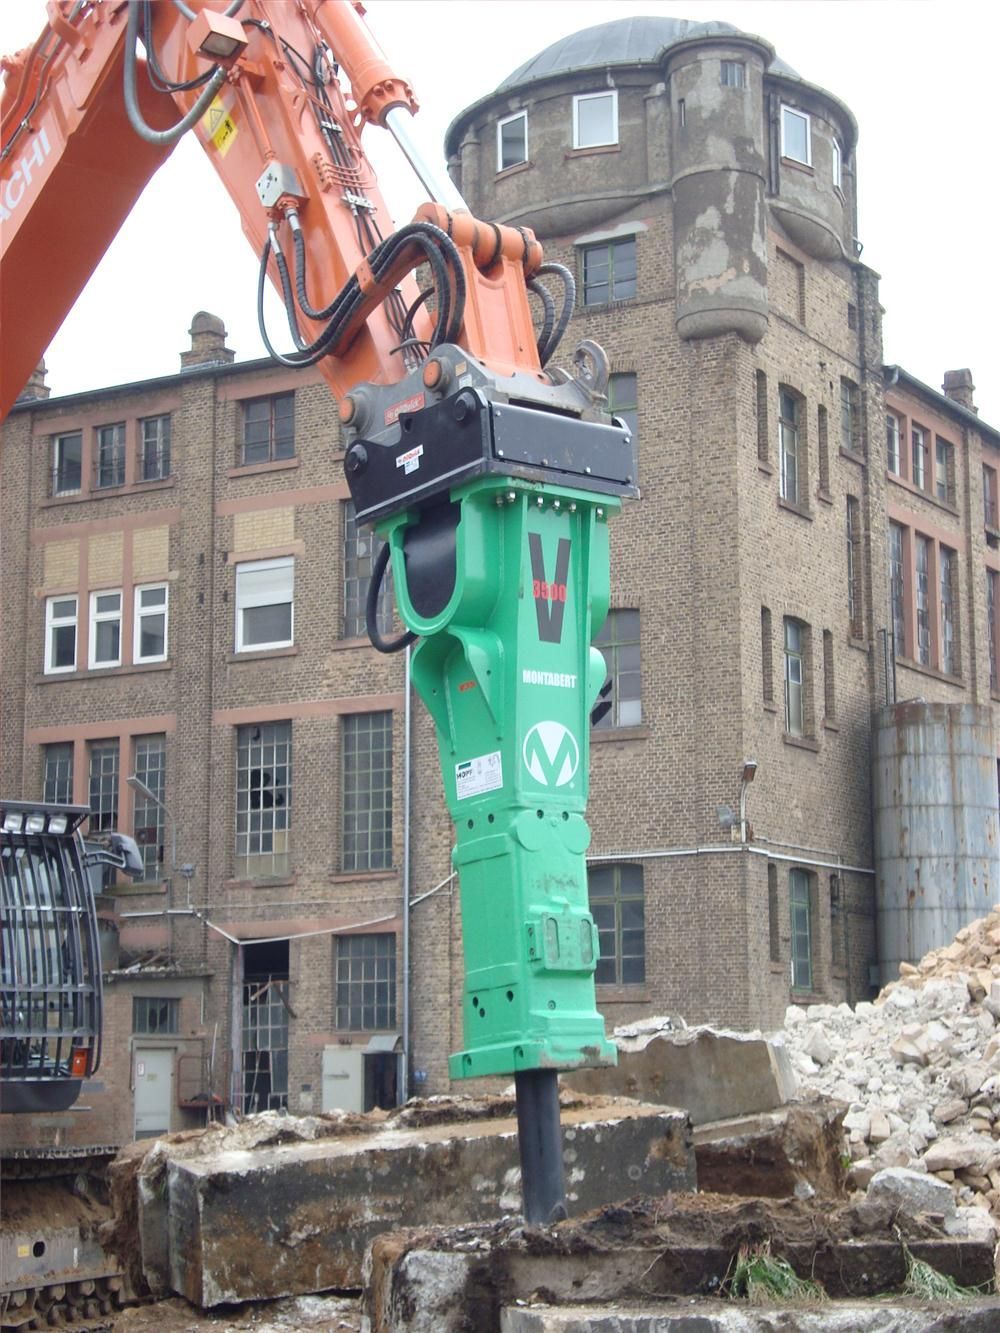 Designed for use on large excavators ranging in size from 35 to 60 tons (31.7 to 54 t), the 8,071-lb. (3,661 kg) hydraulic breaker delivers up to 710 blows per minute.